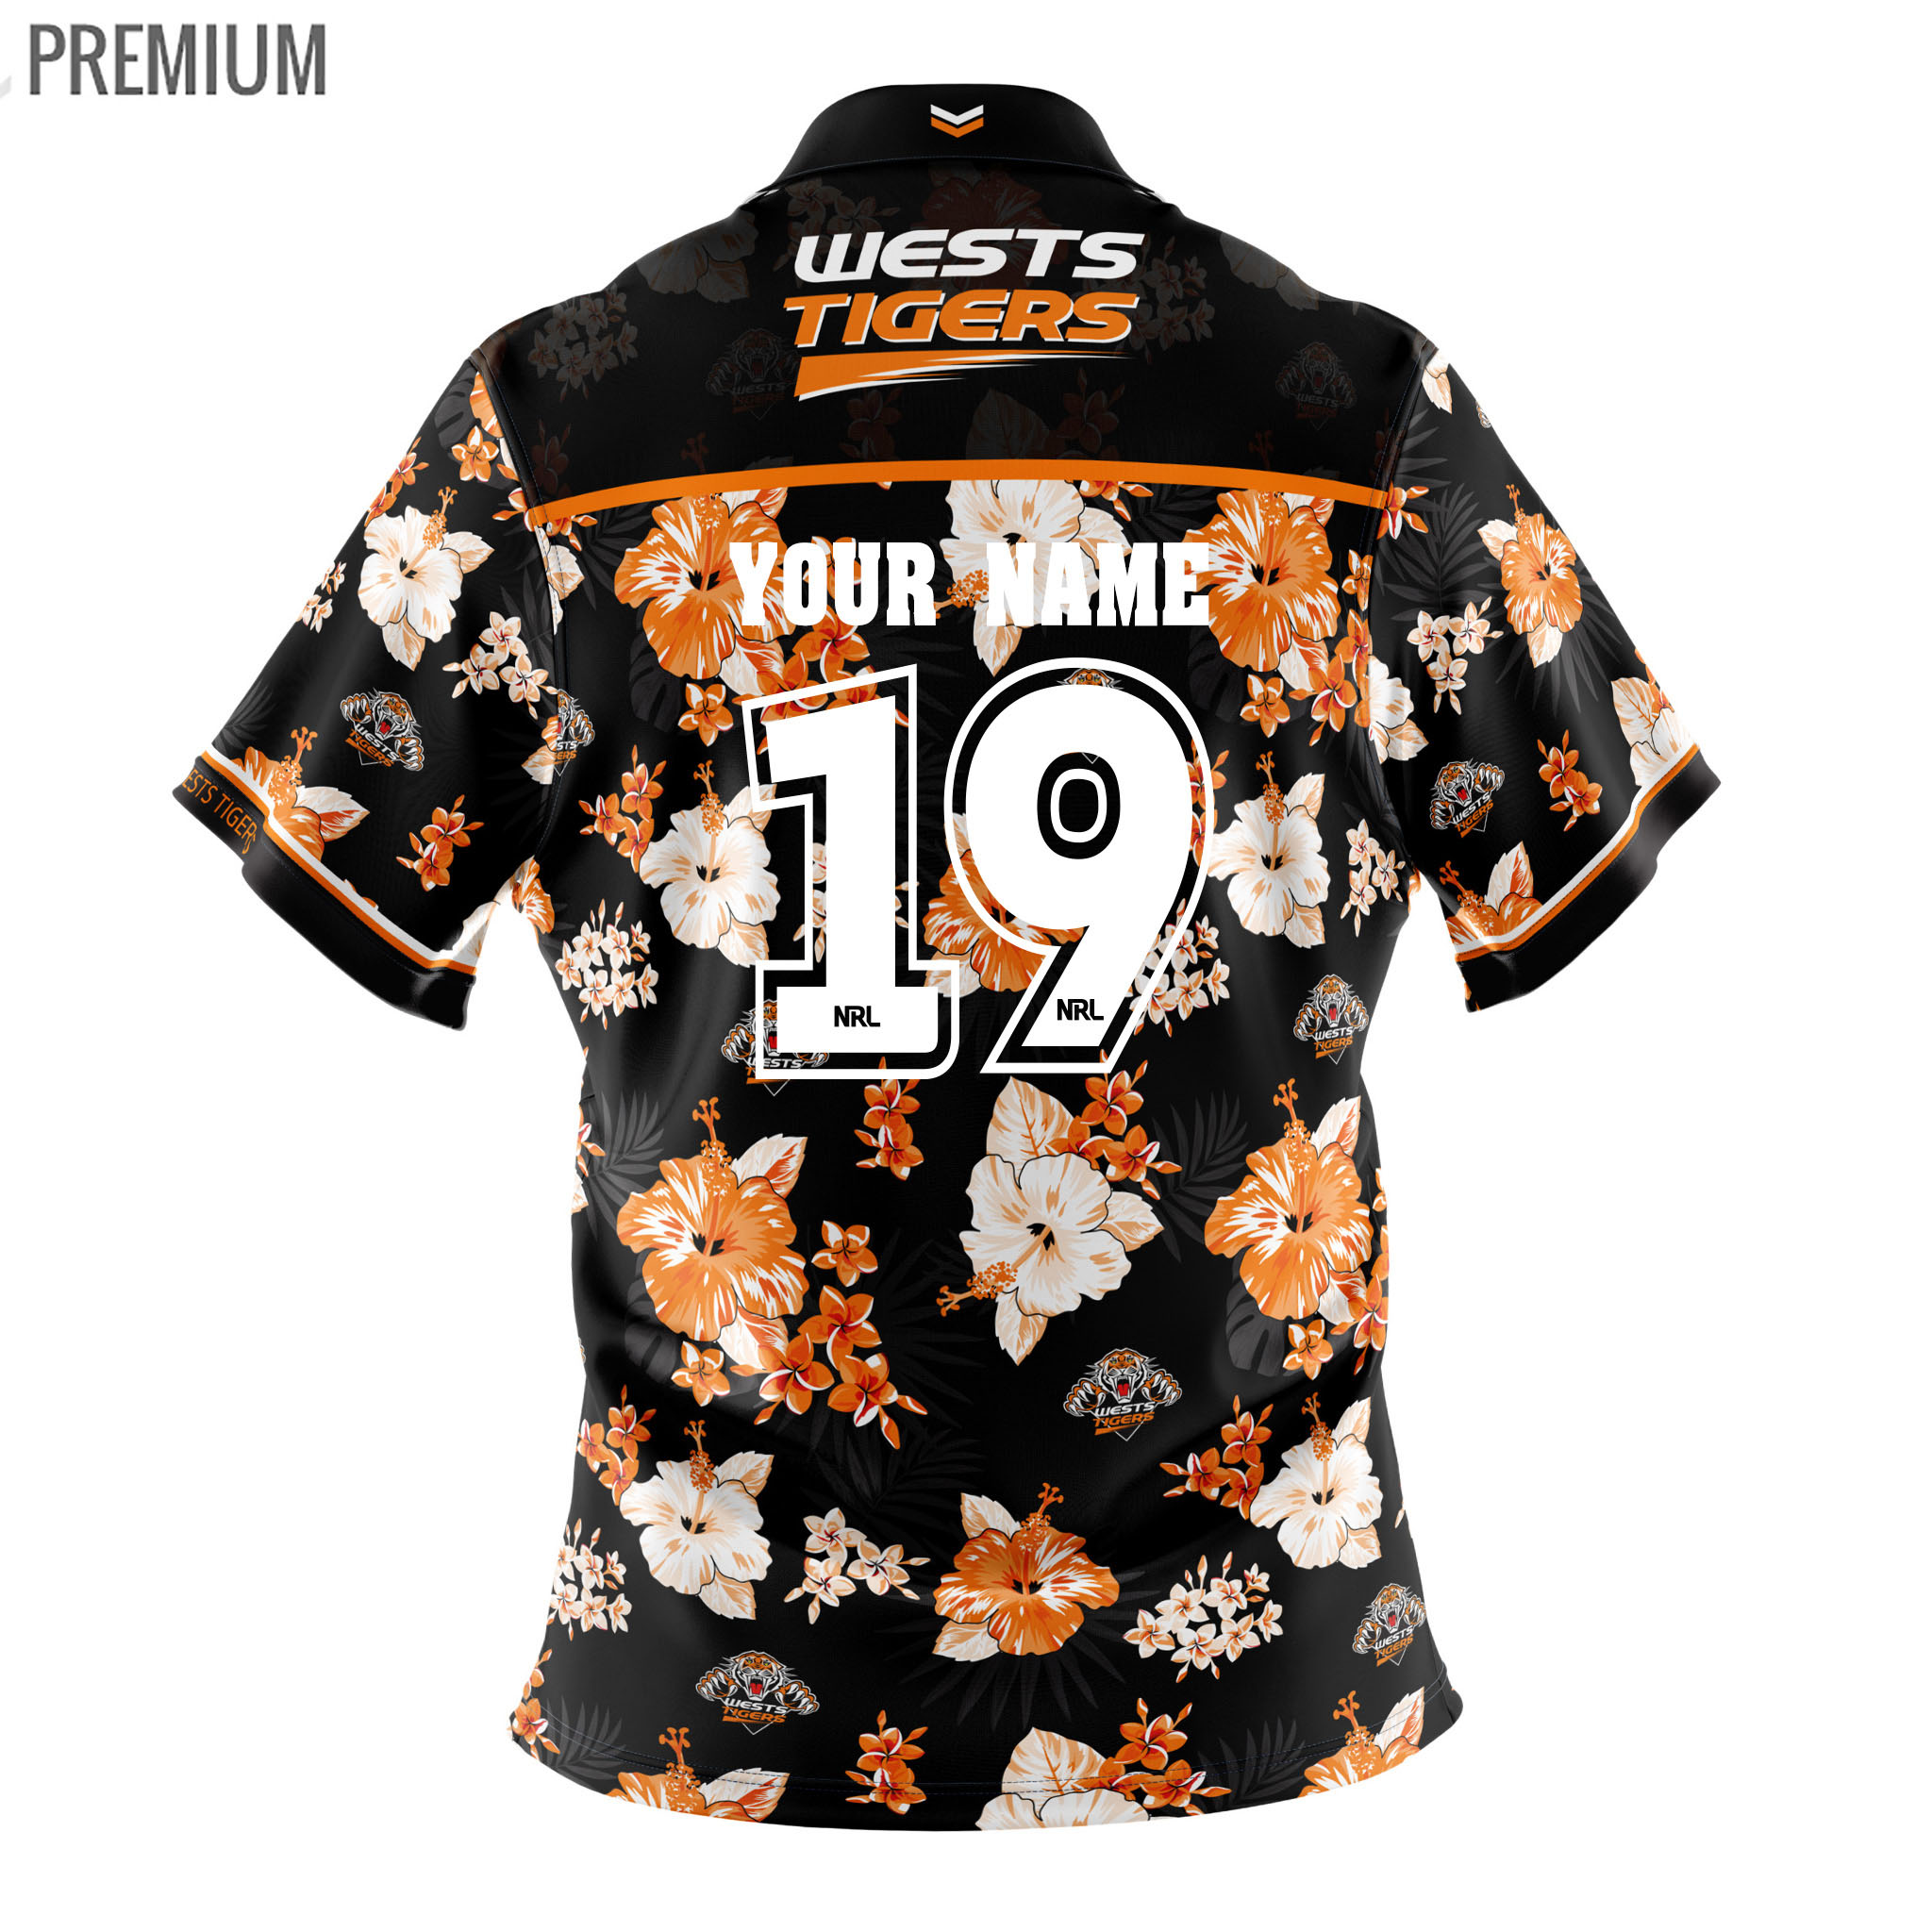 d481868f Buy 2019 Wests Tigers Hawaiian Shirt - Adult - Your Jersey